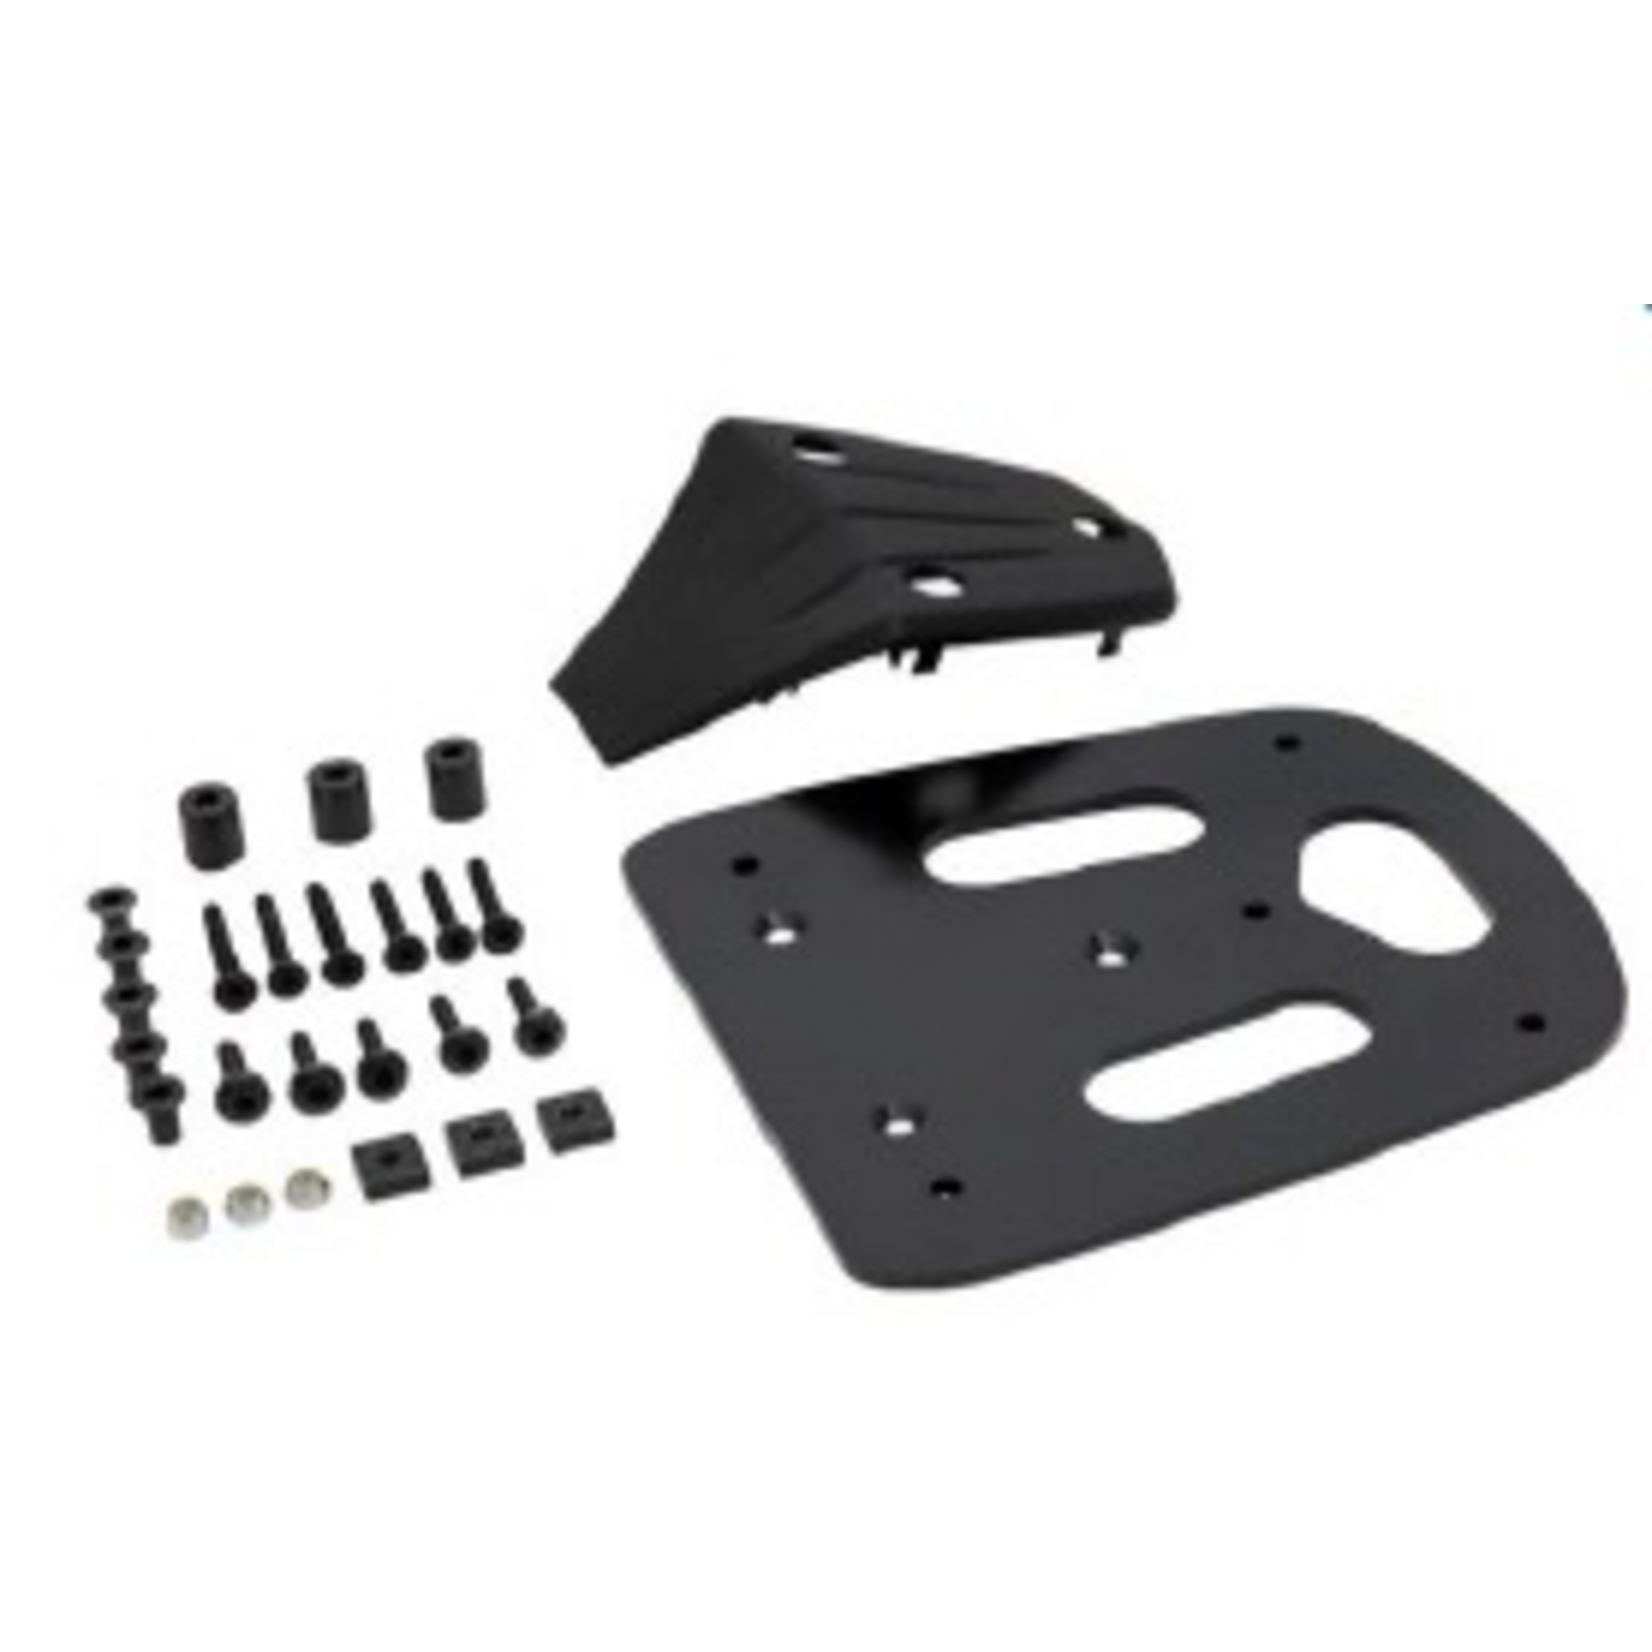 Accessories Top Case Mounting Kit, BV350 37LTR